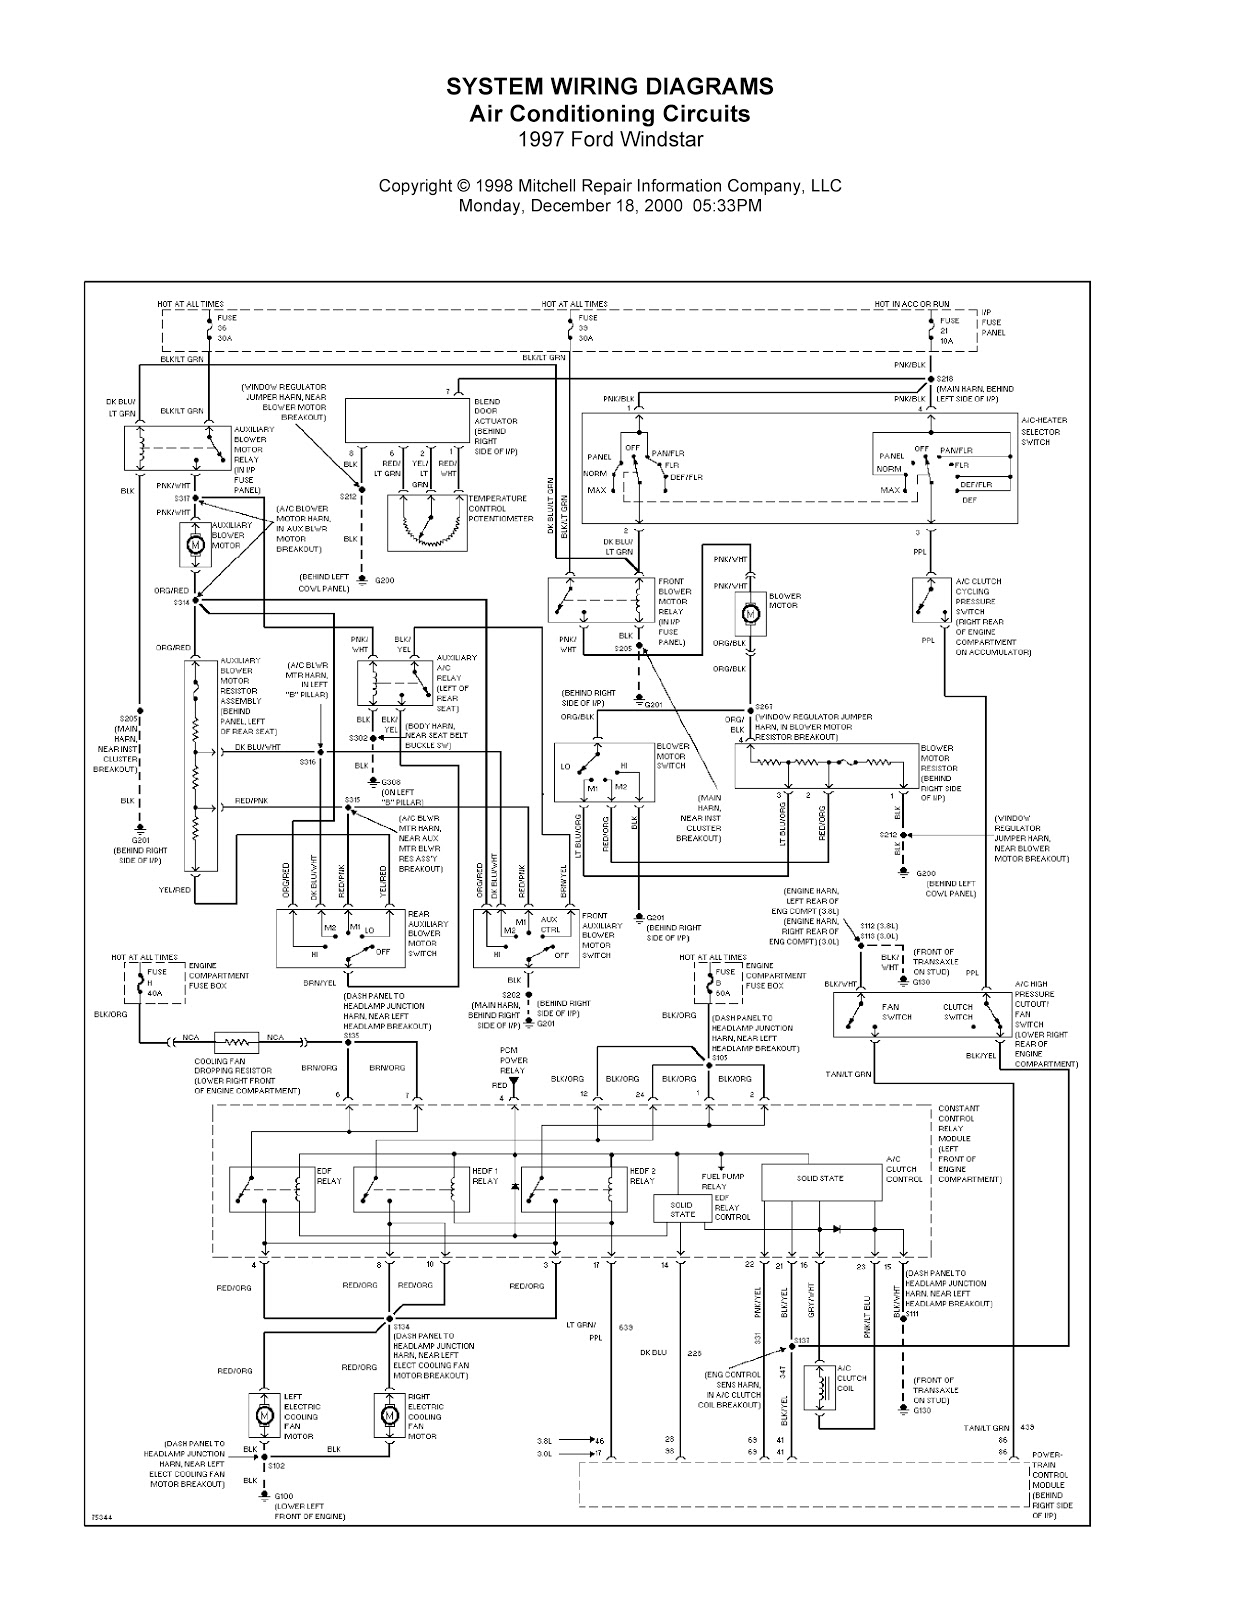 0001 2000 ford windstar wiring diagram ford windstar 3 8 engine diagram 84 Ford Thunderbird Wiring Diagram at bakdesigns.co